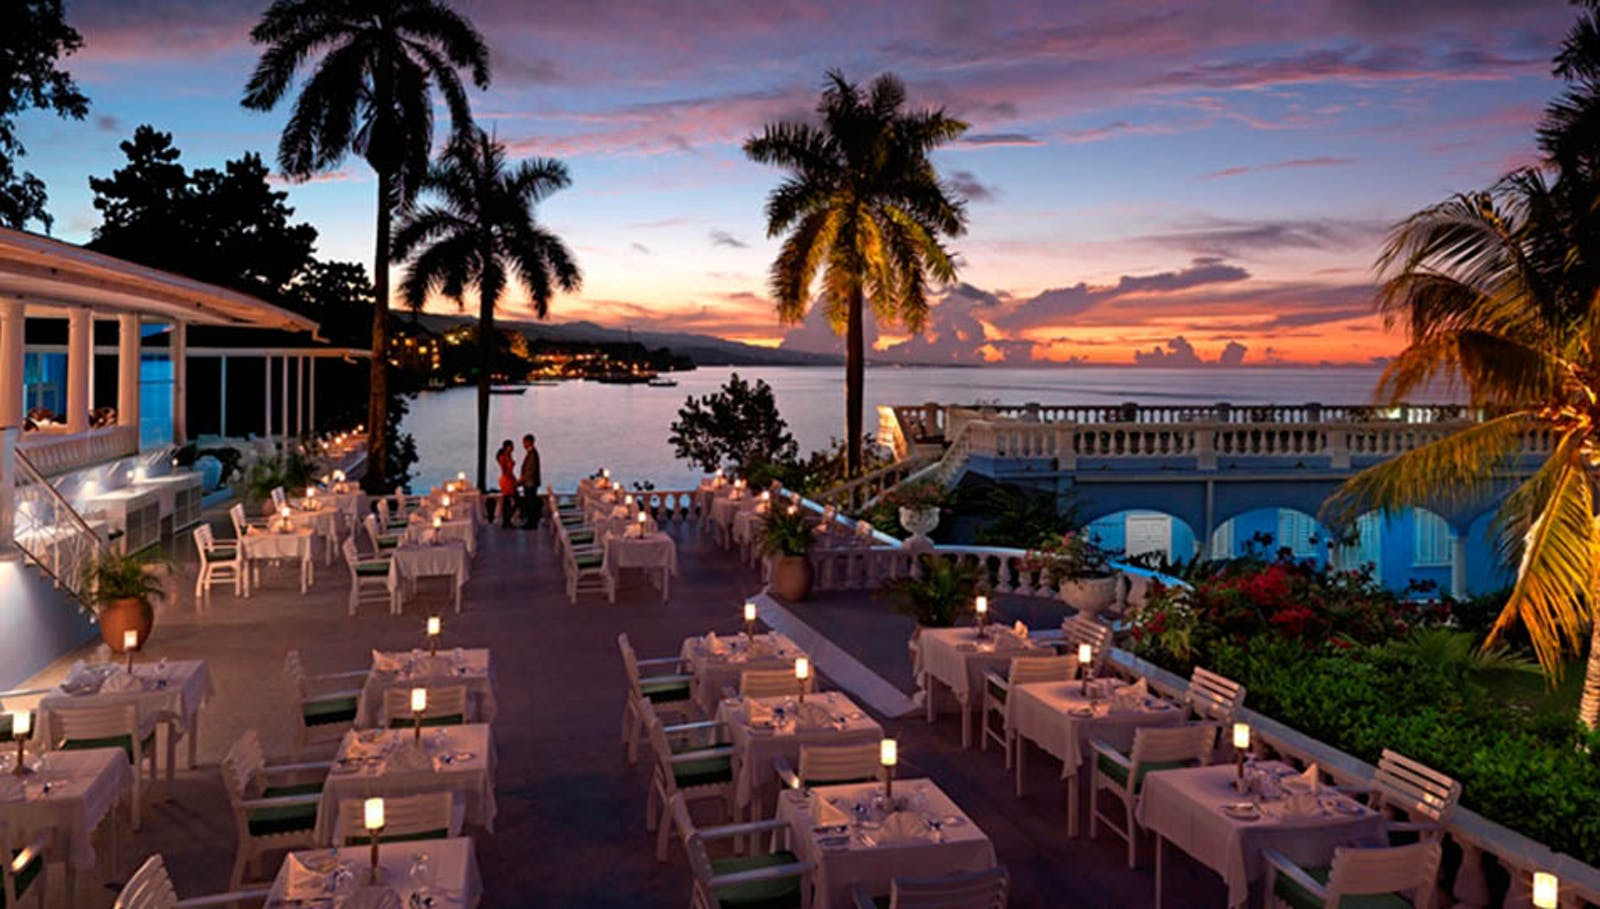 Dine al fresco at the dinner terrace at Jamaica Inn, Jamaica